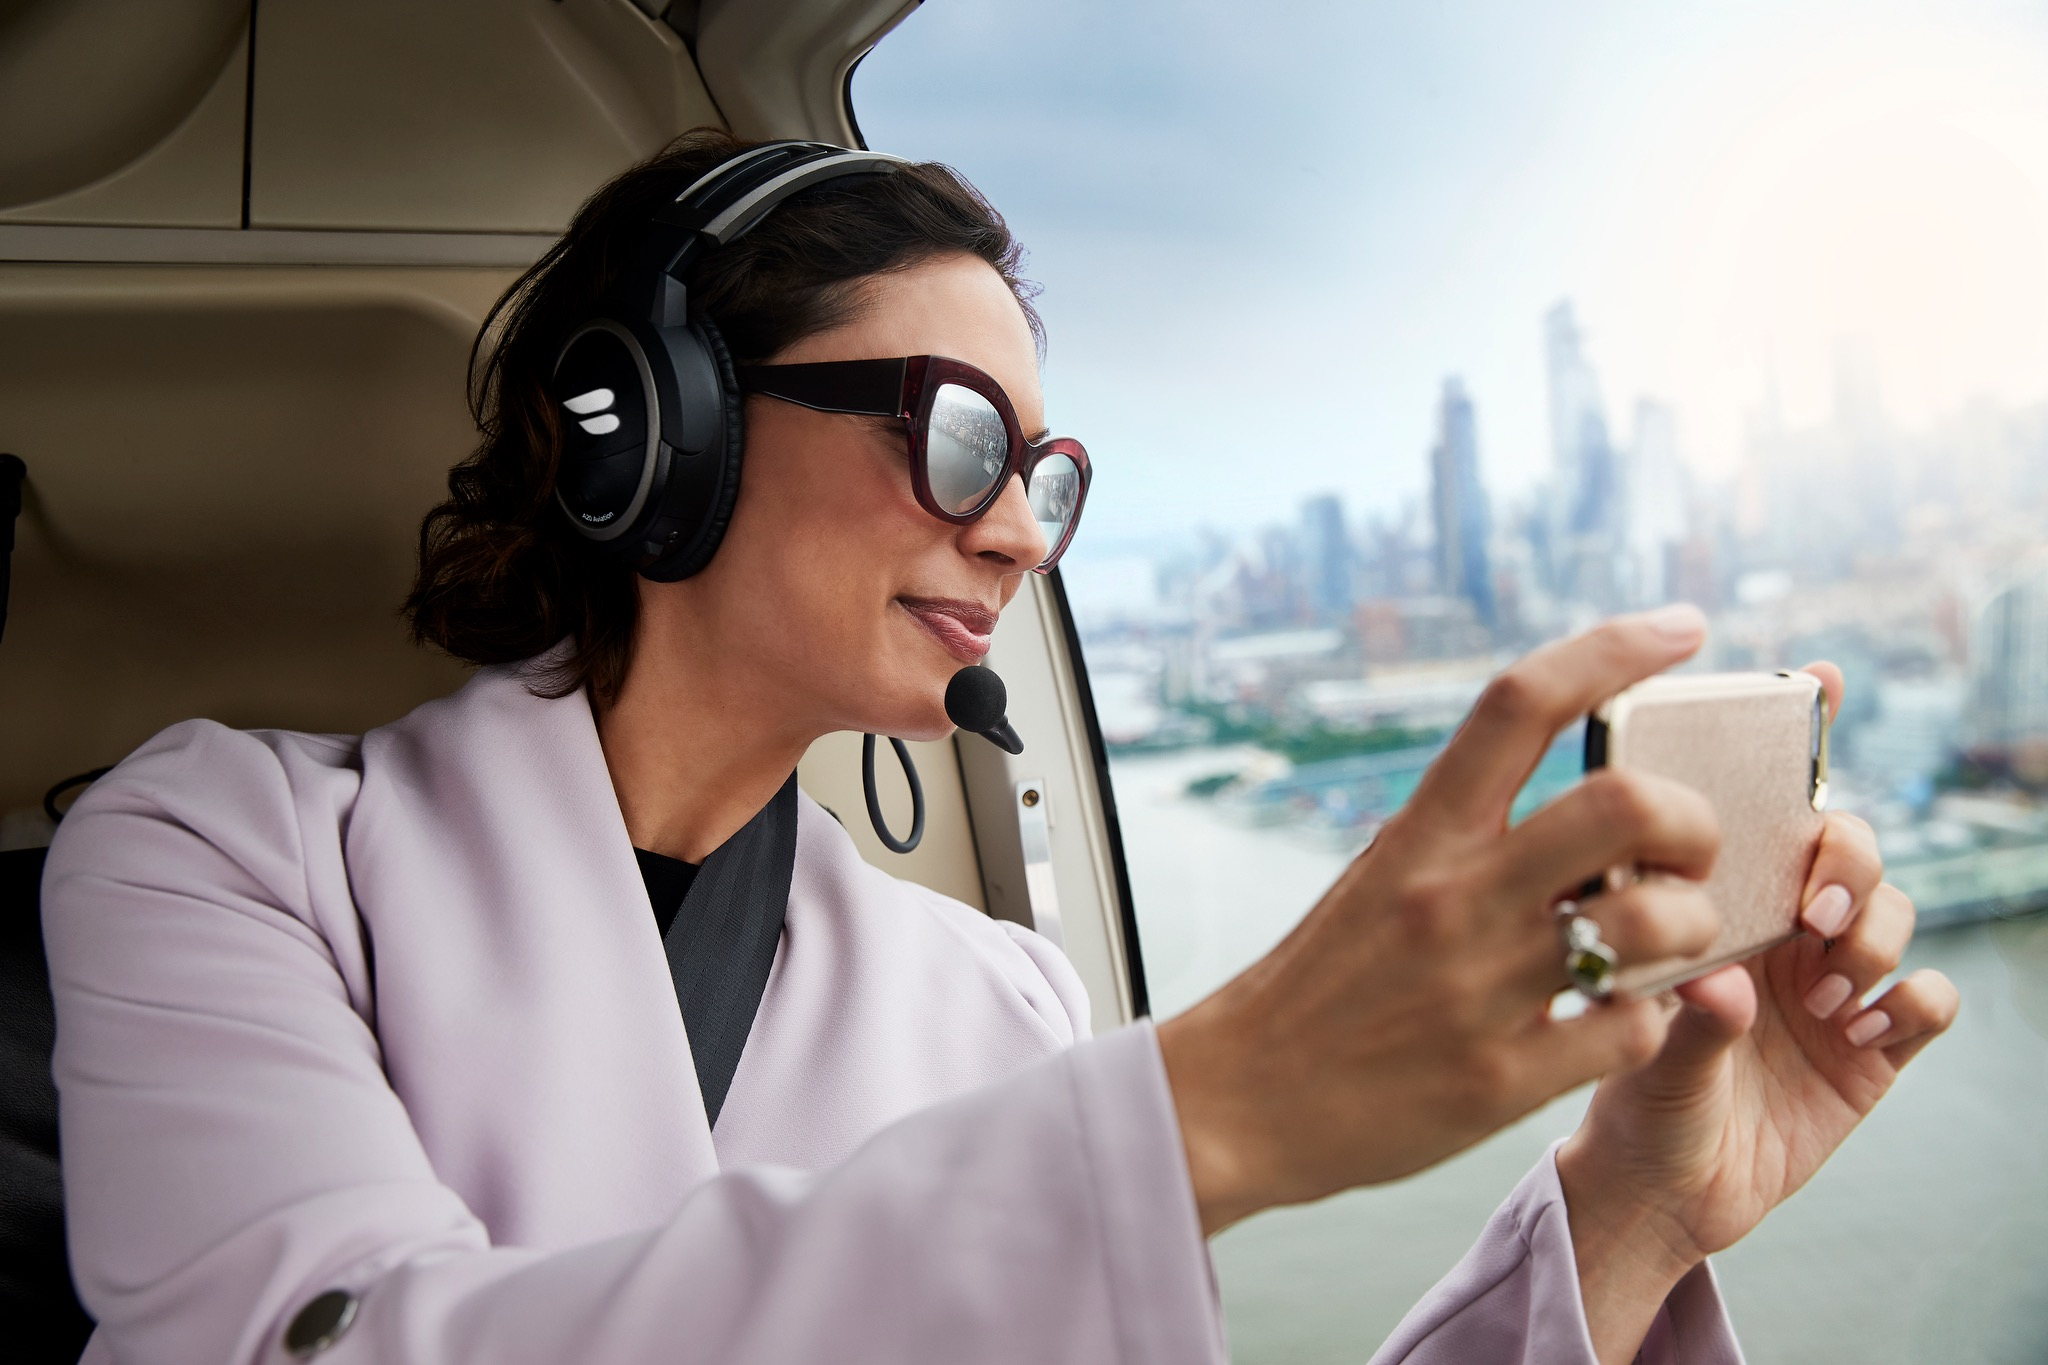 Woman Flying and Taking a Picture